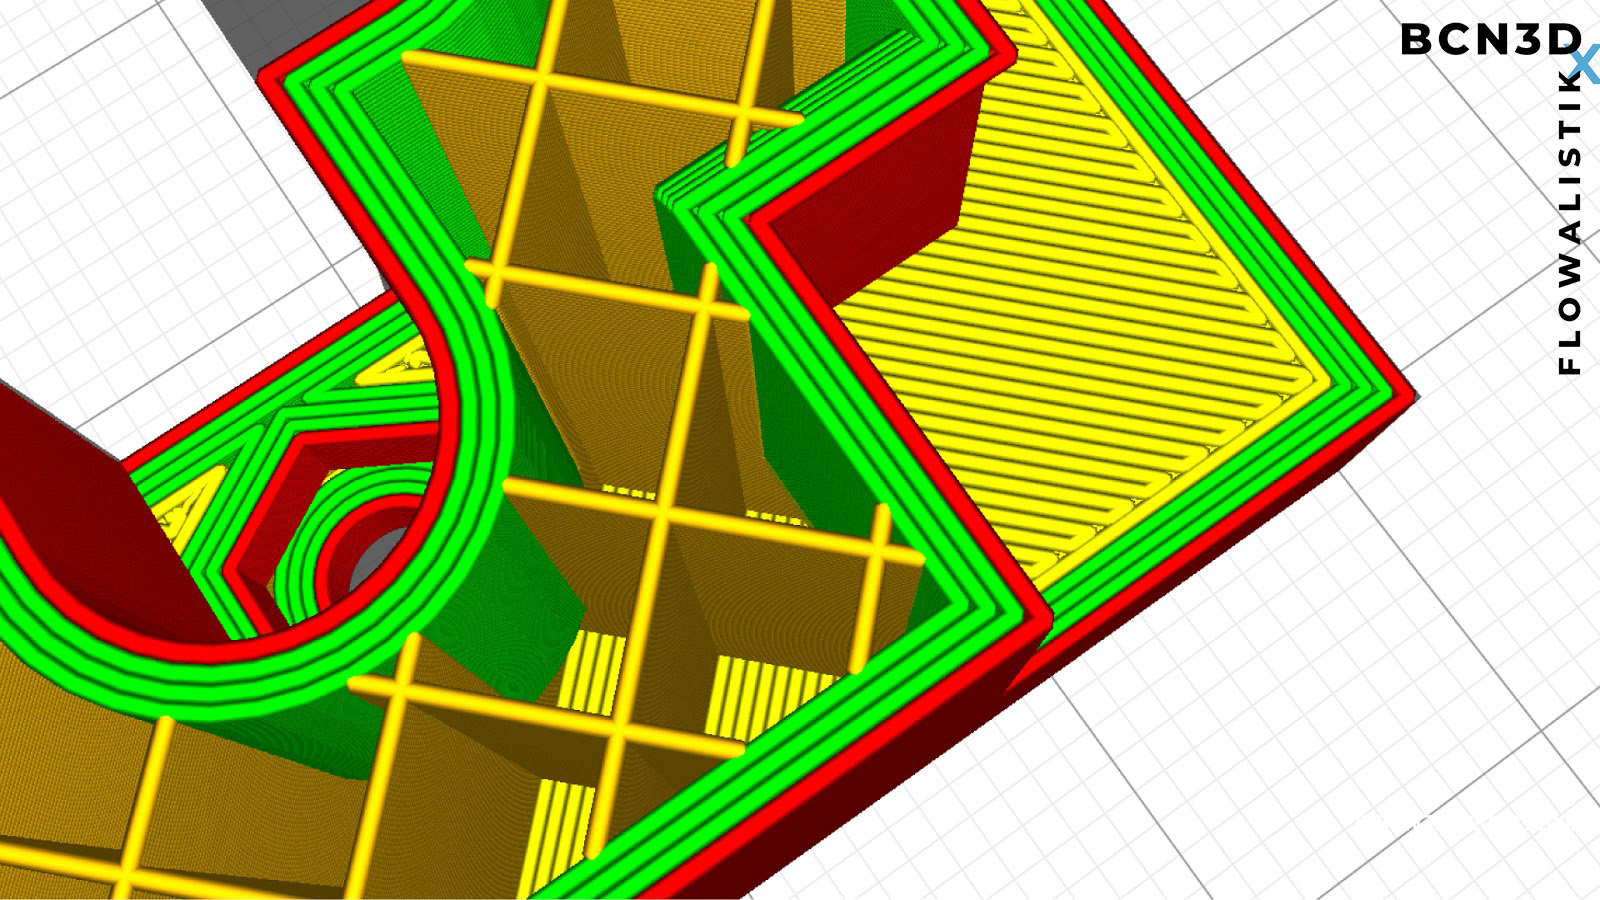 Wall thickness preview